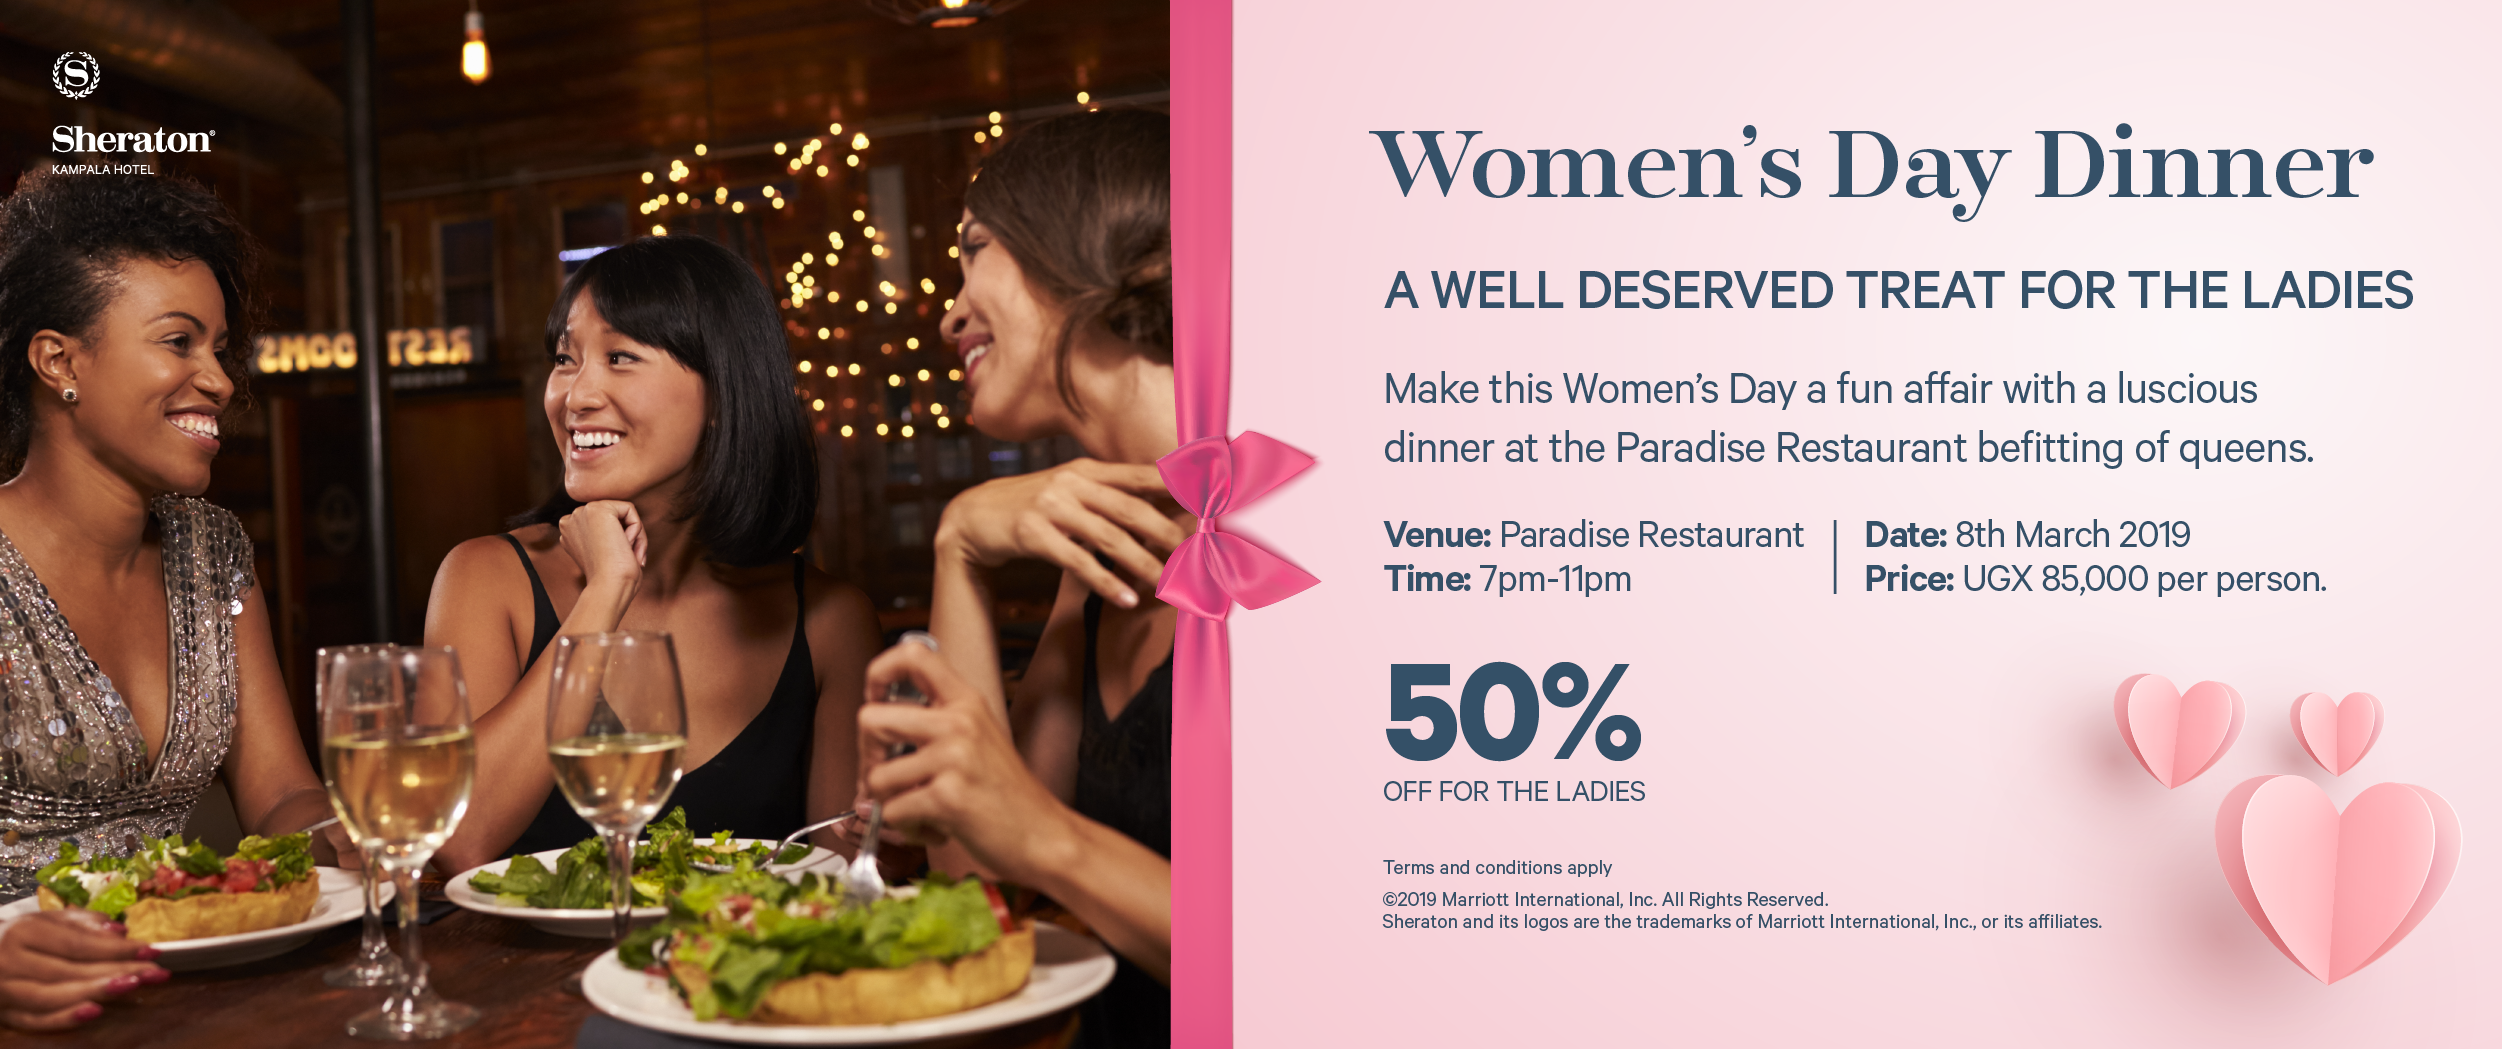 Important for the ladies, plenty of secure parking when you come to the Sheraton!